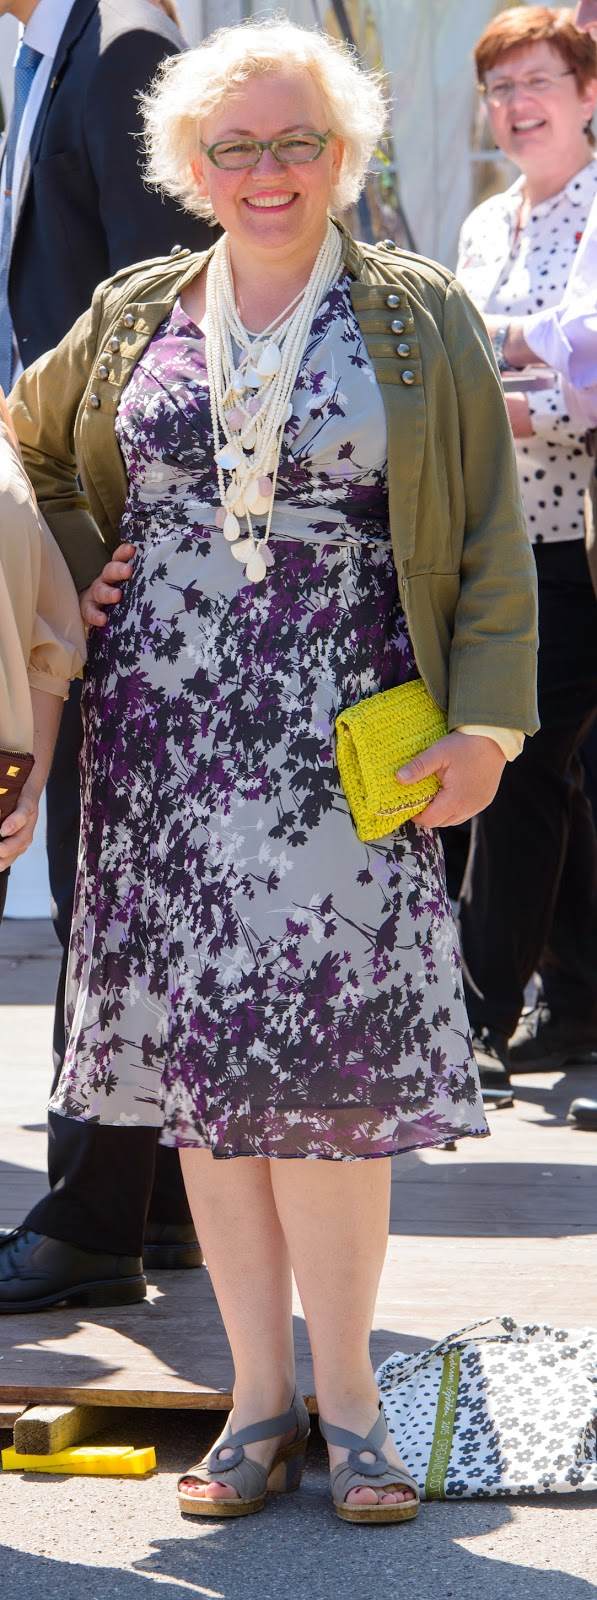 Michael Quist photo of Kaffesoester in CC dress with neon clutch